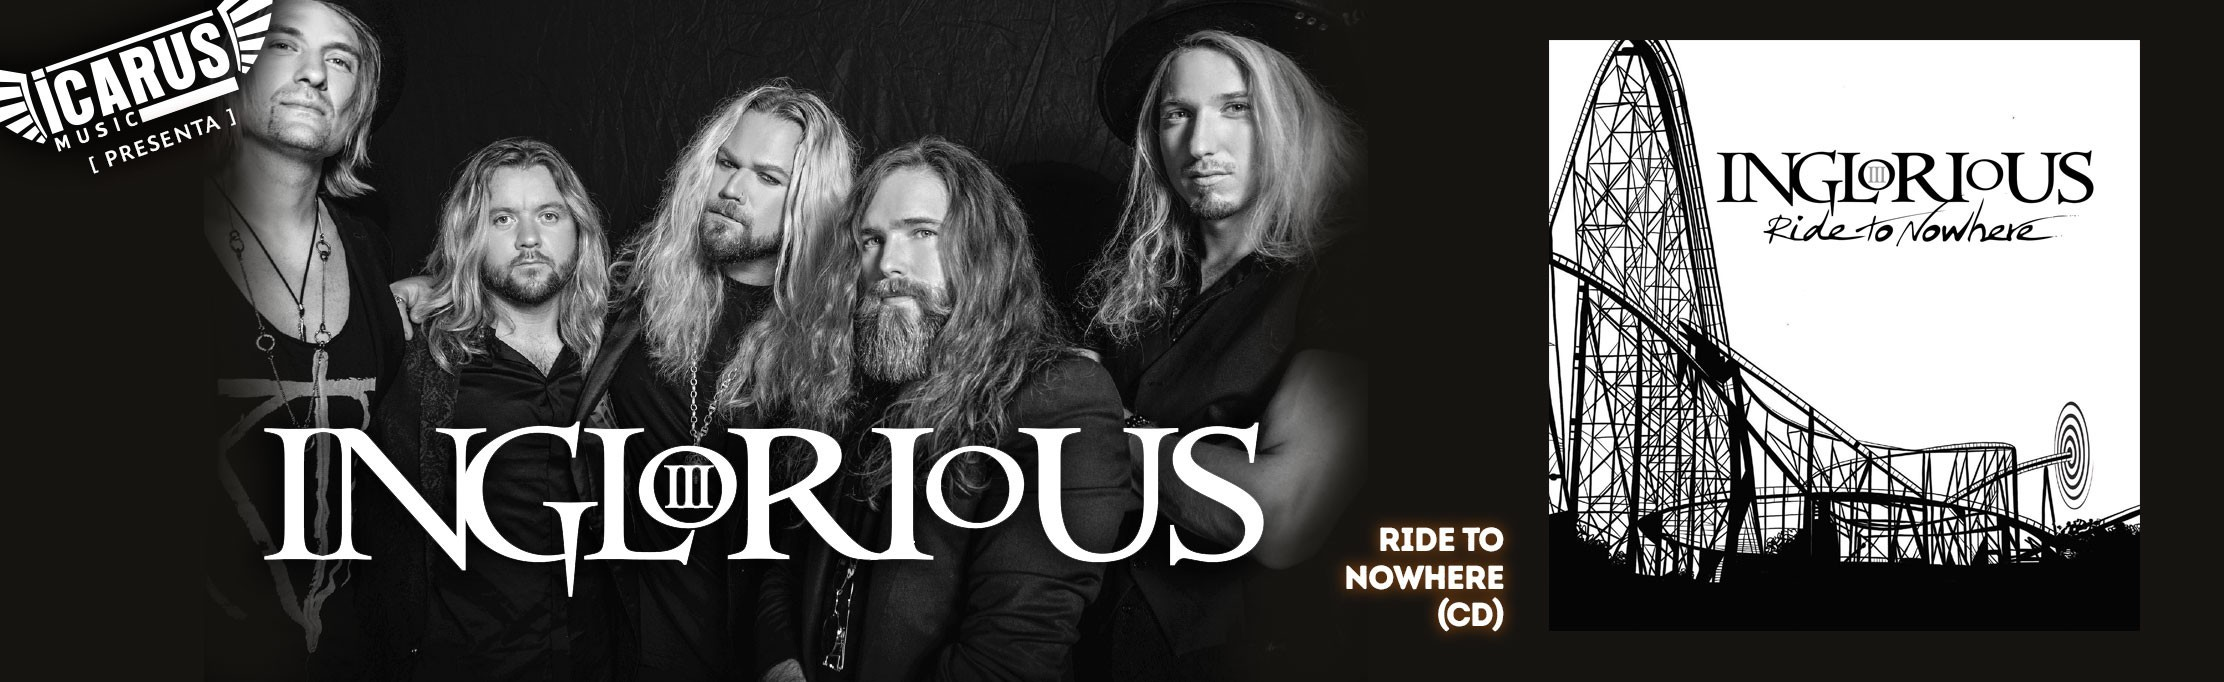 INGLORIOUS - Ride to Nowhere - Cd